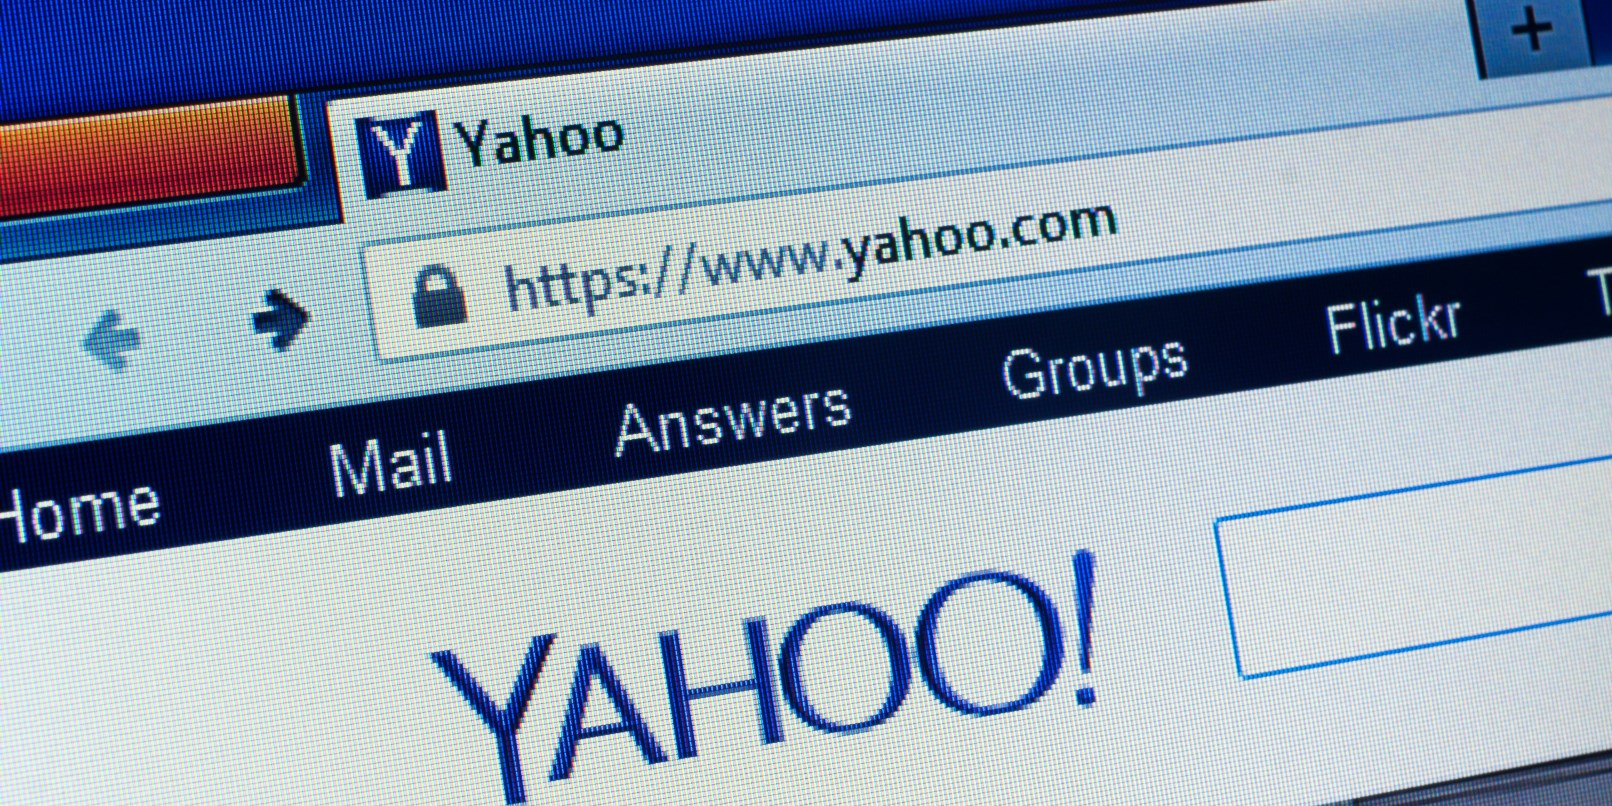 Will my past YahooAnswers questions be allowed in court?